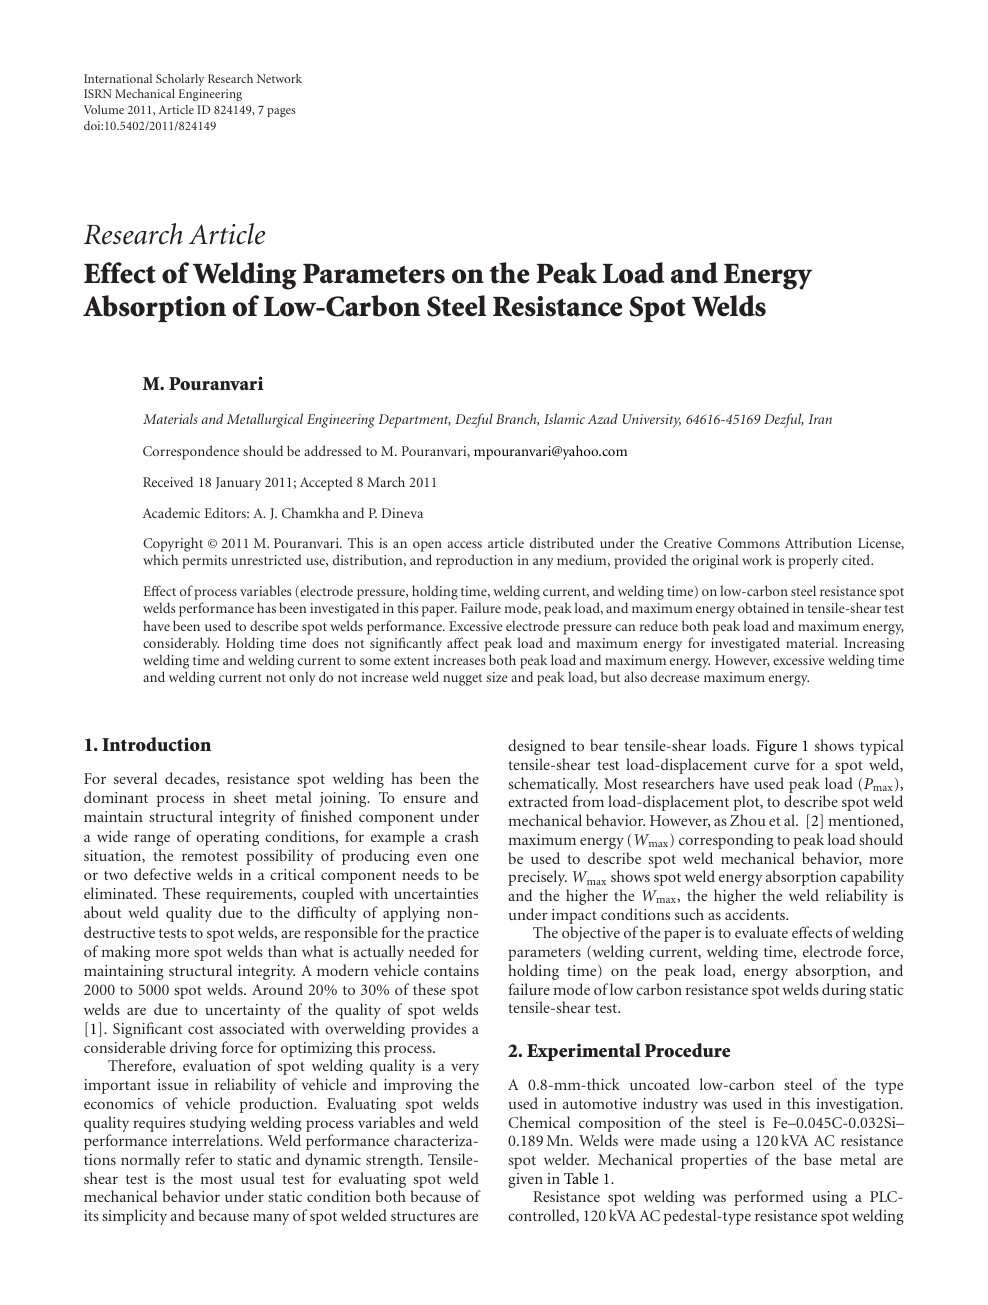 Effect of Welding Parameters on the Peak Load and Energy Absorption